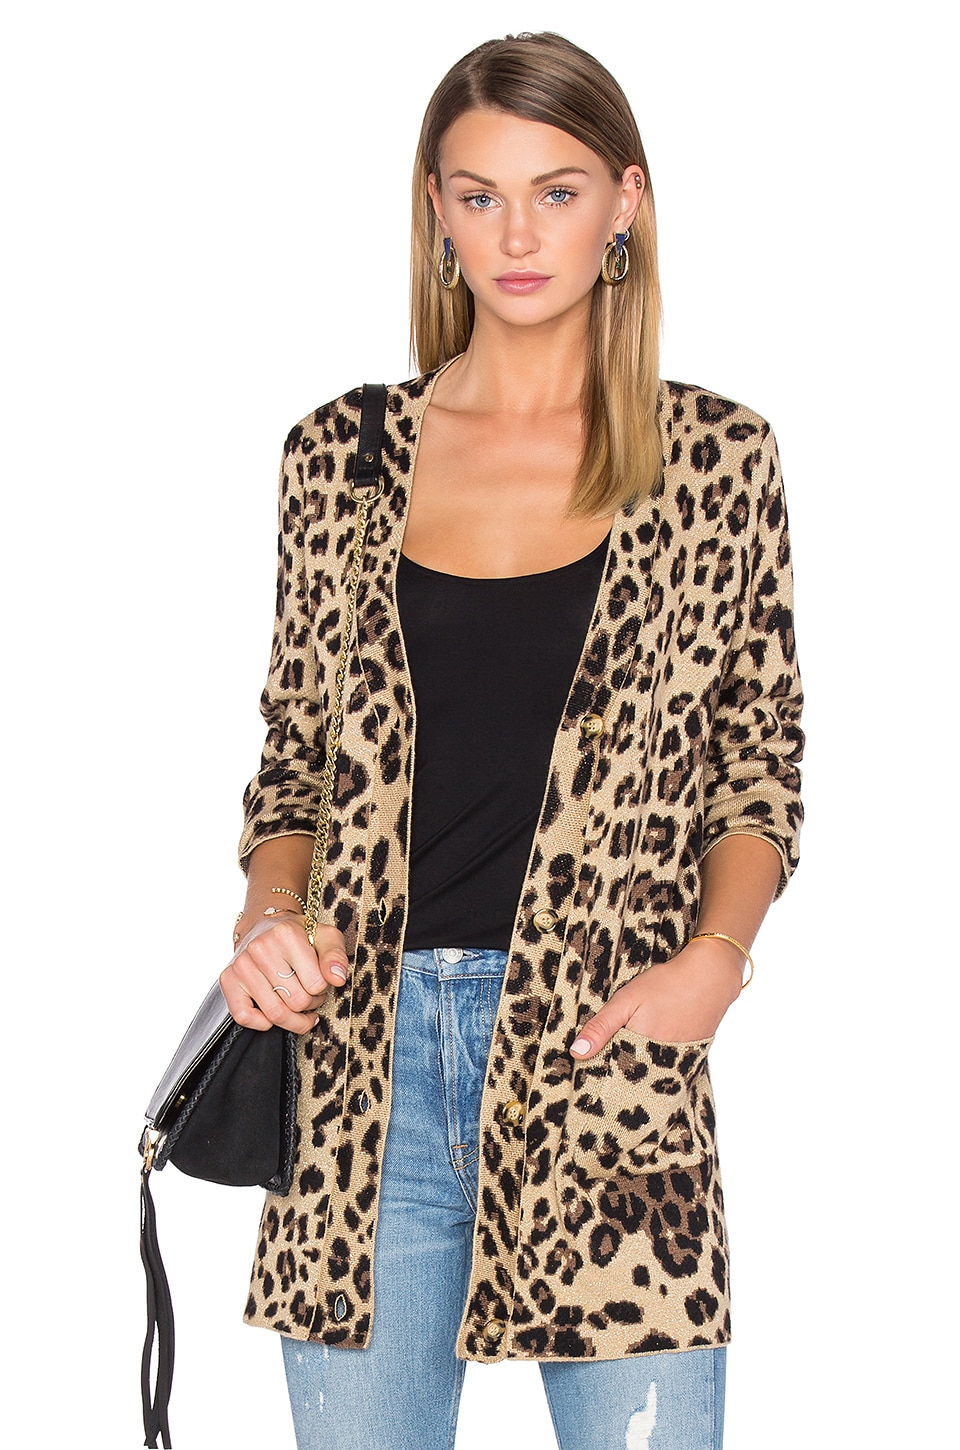 House of Harlow 1960 x REVOLVE Carine Cardigan in Leopard